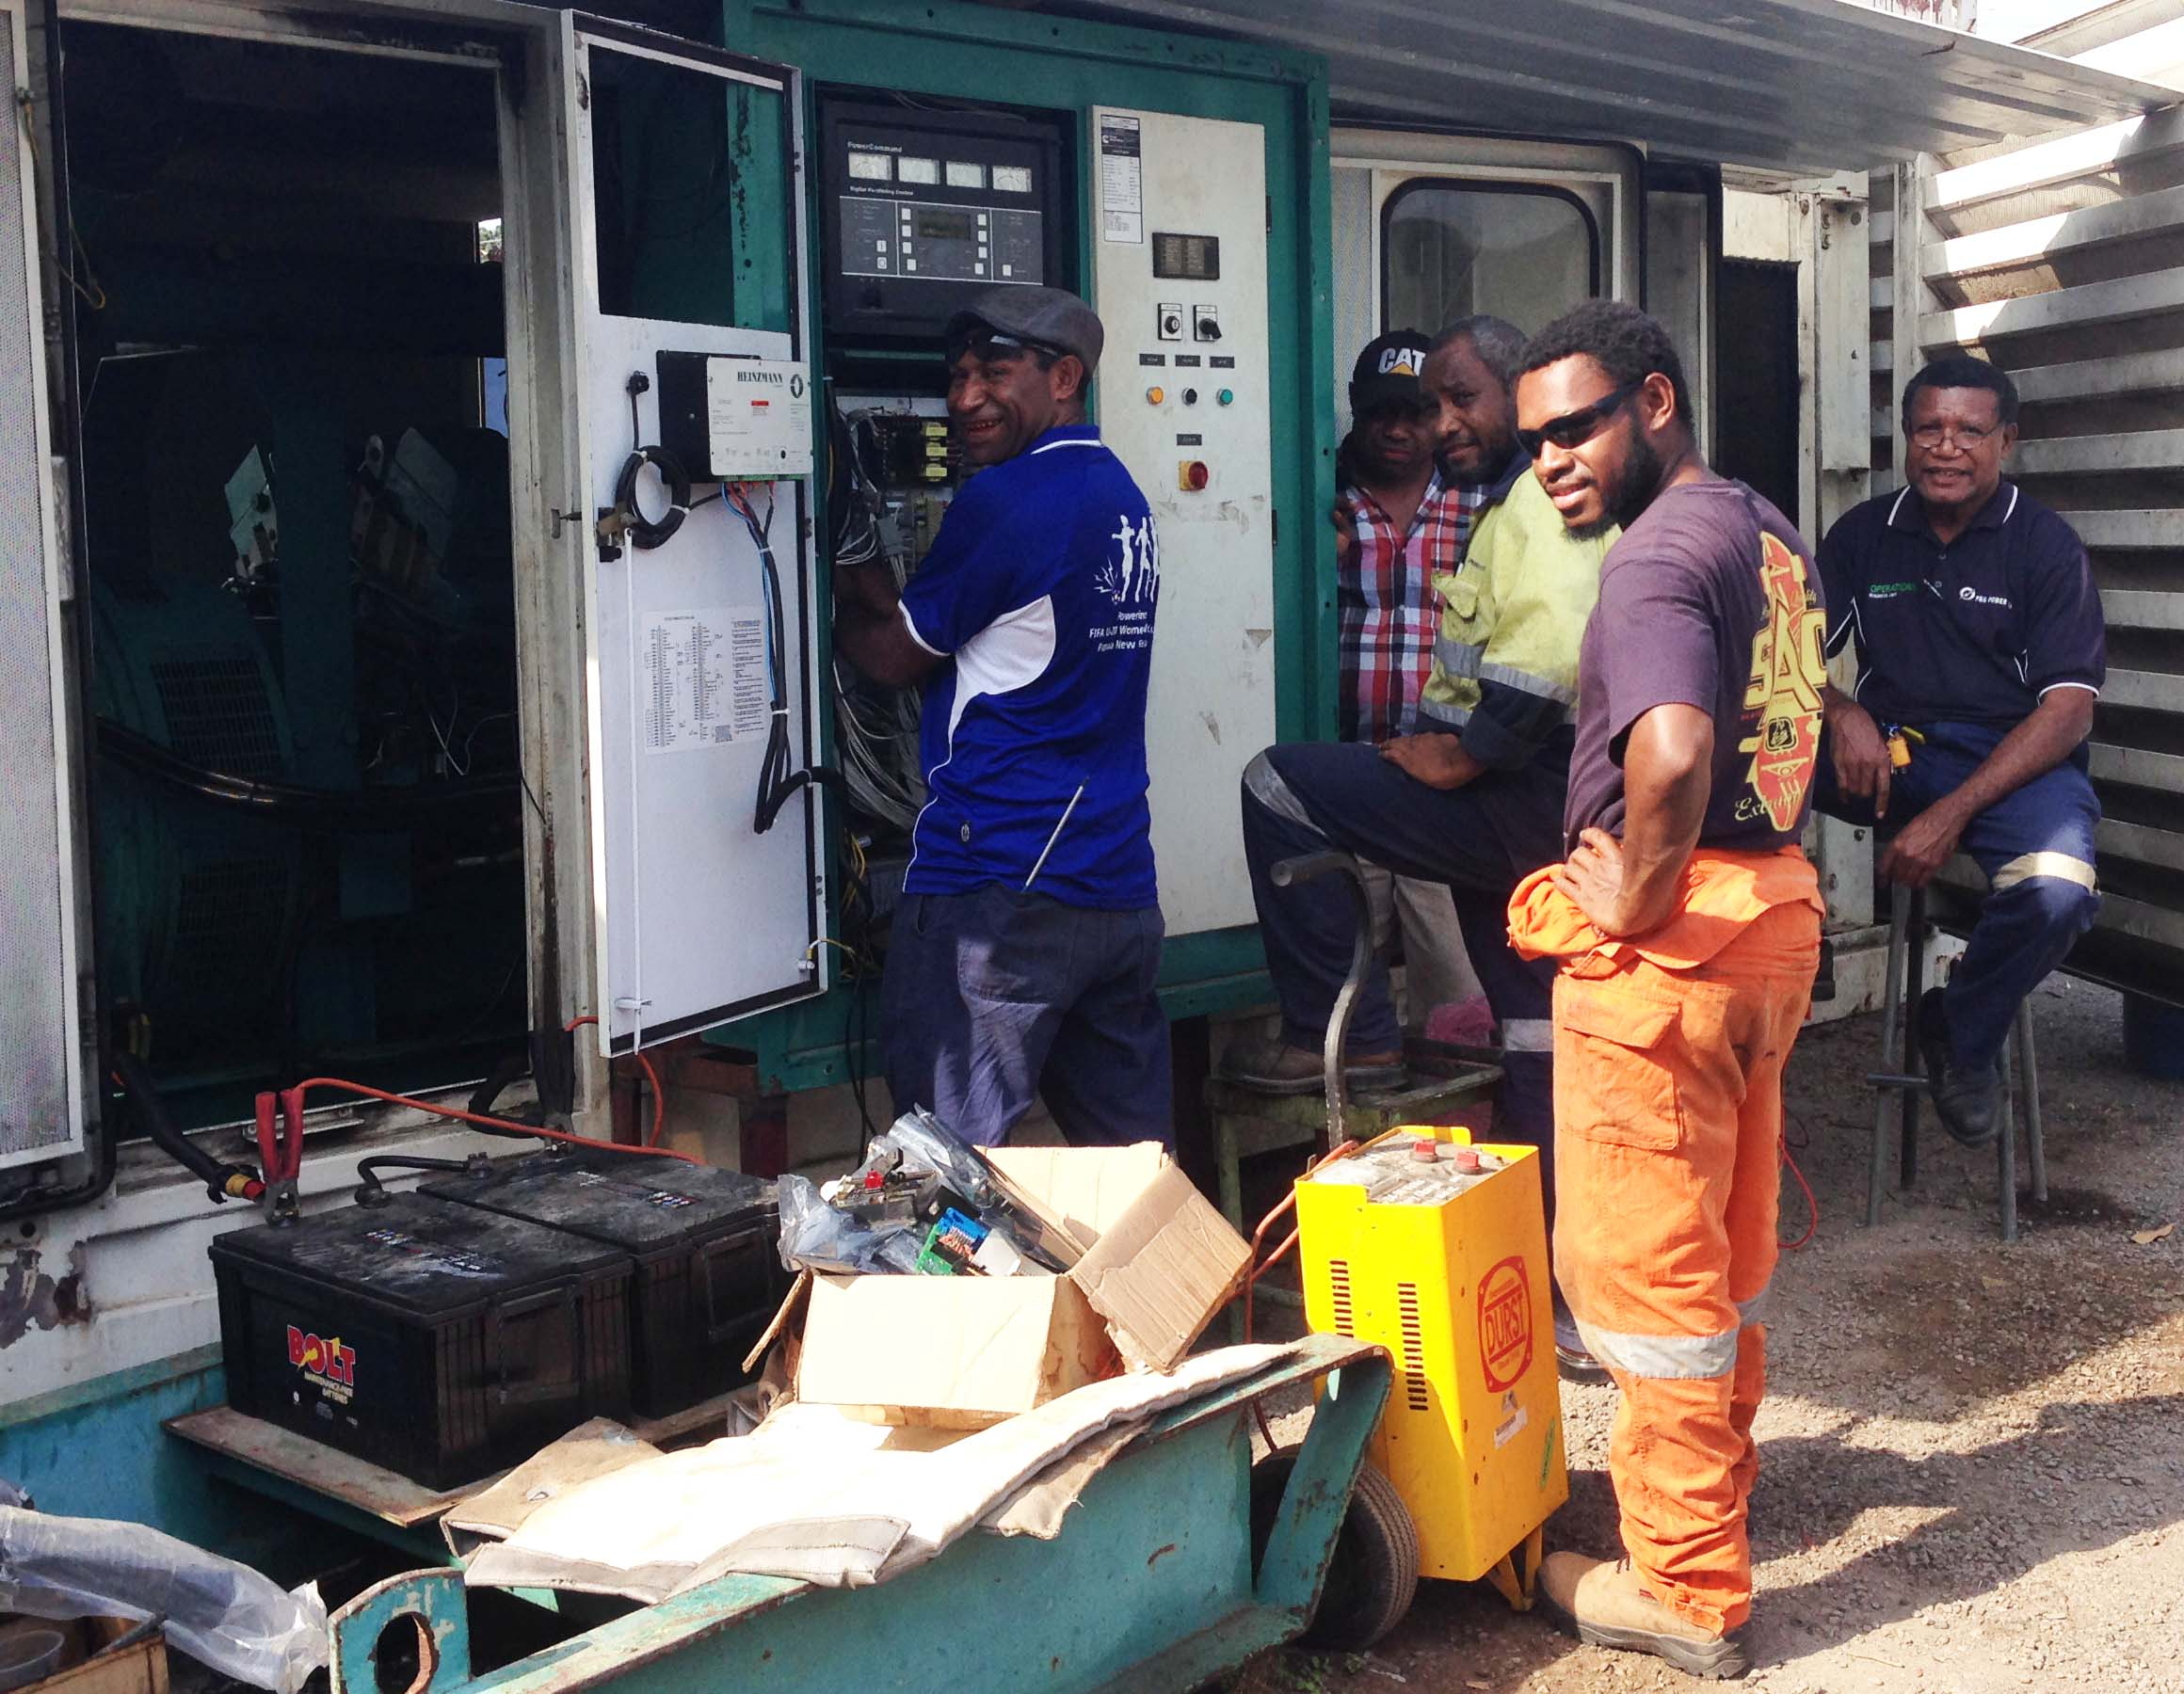 Buka operations to utilise a 'Mobile' generator